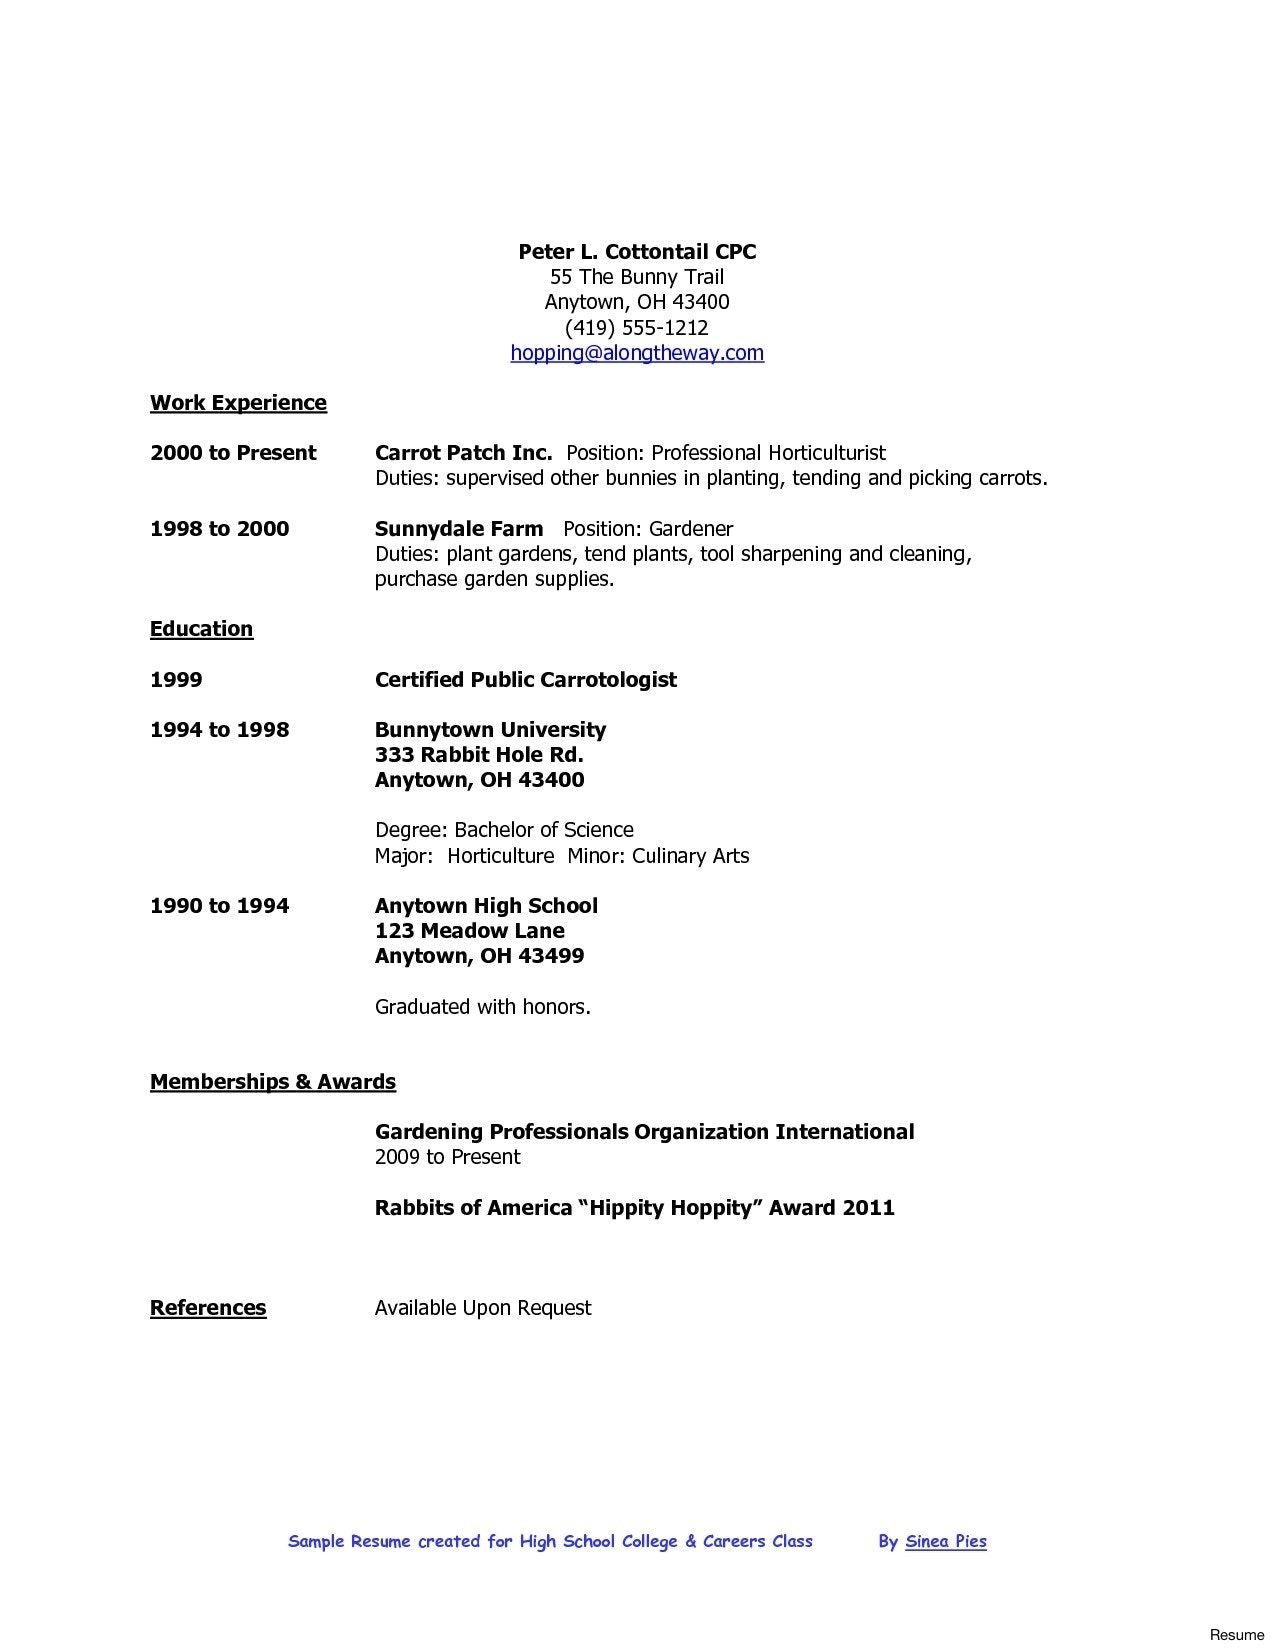 resume format high school graduate job samples college template for compliance officer Resume High School Graduate Resume For College